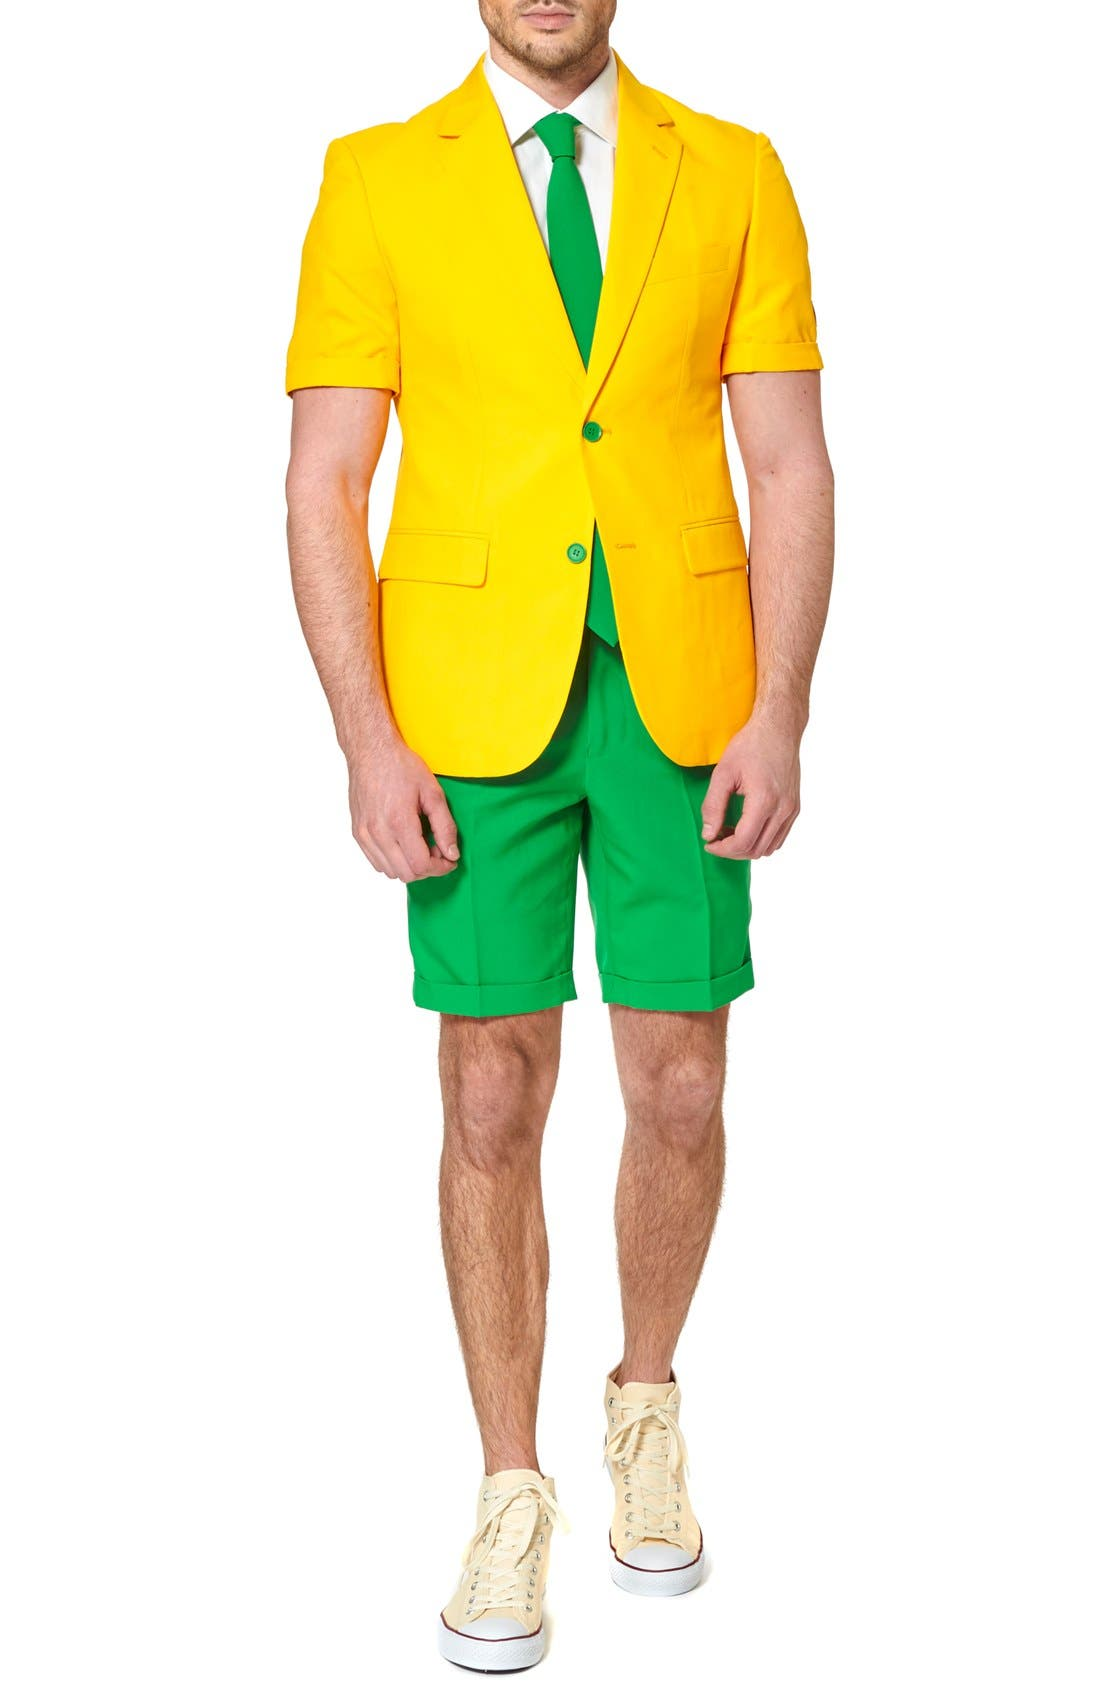 Alternate Image 4  - OppoSuits 'Summer Green & Gold' Trim Fit Short Suit with Tie